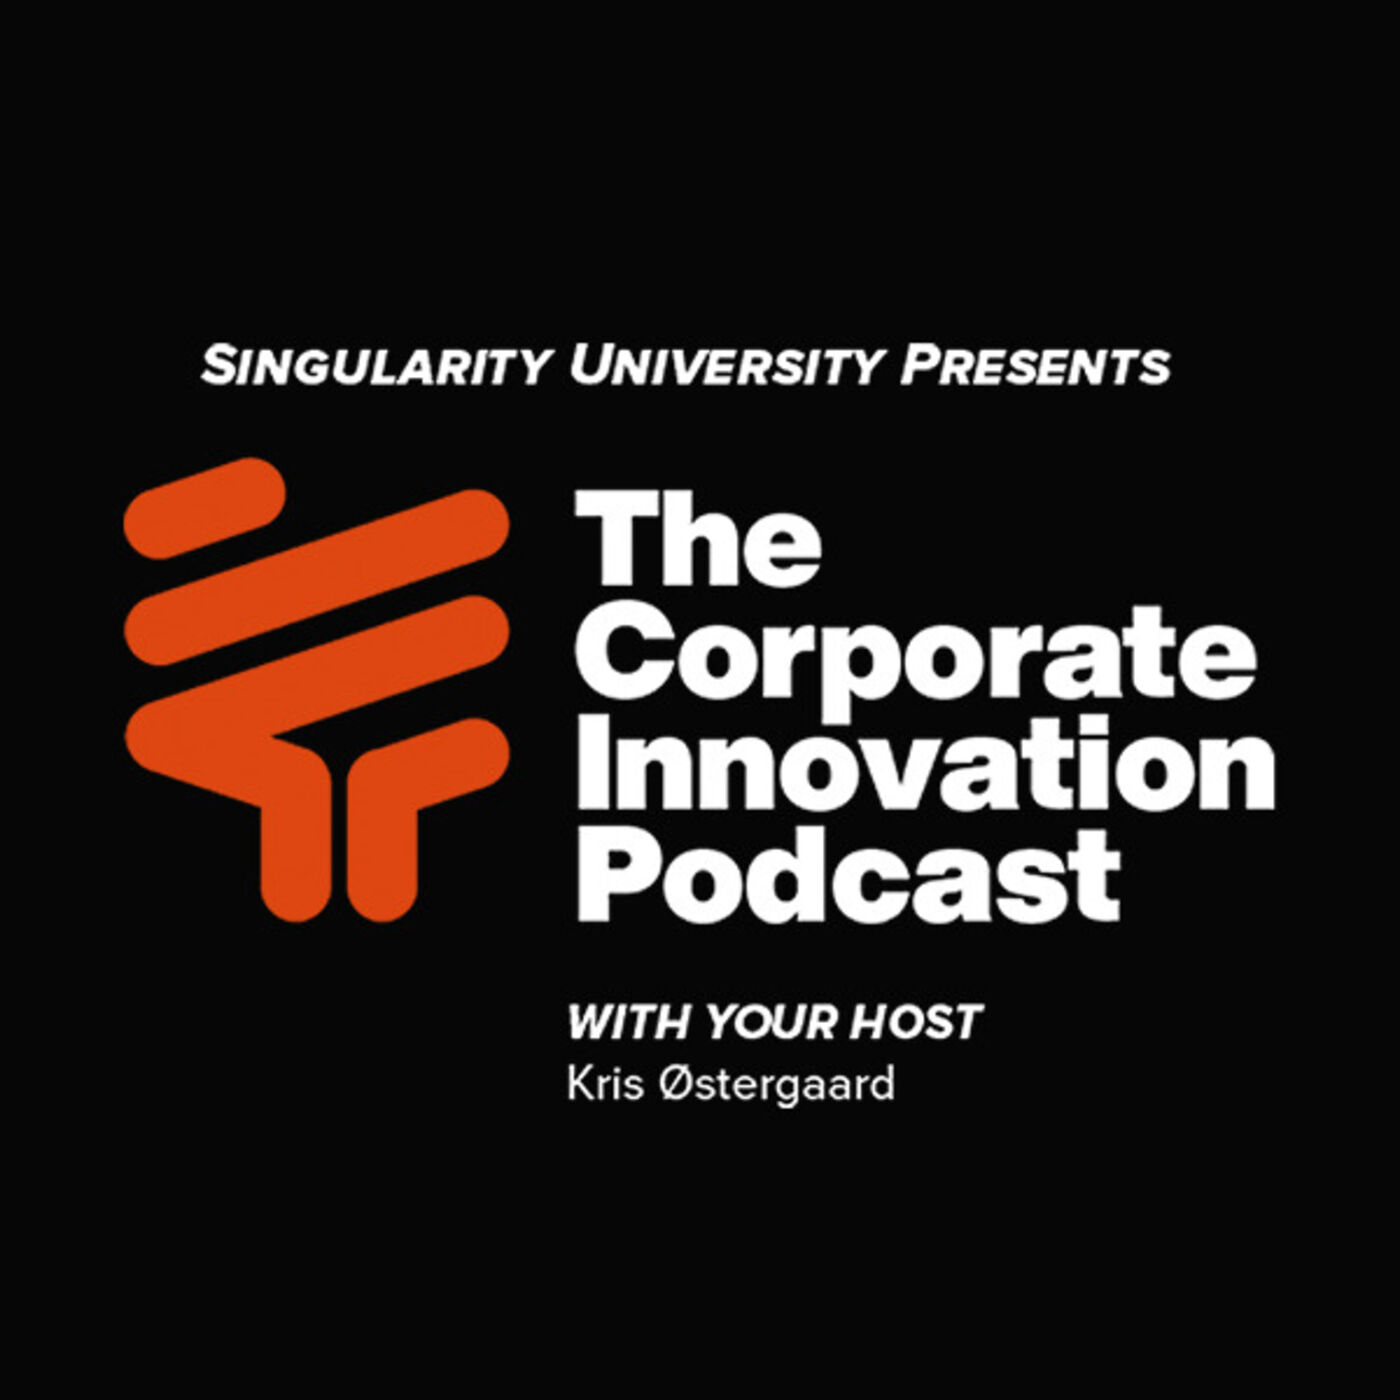 The Corporate Innovation Podcast